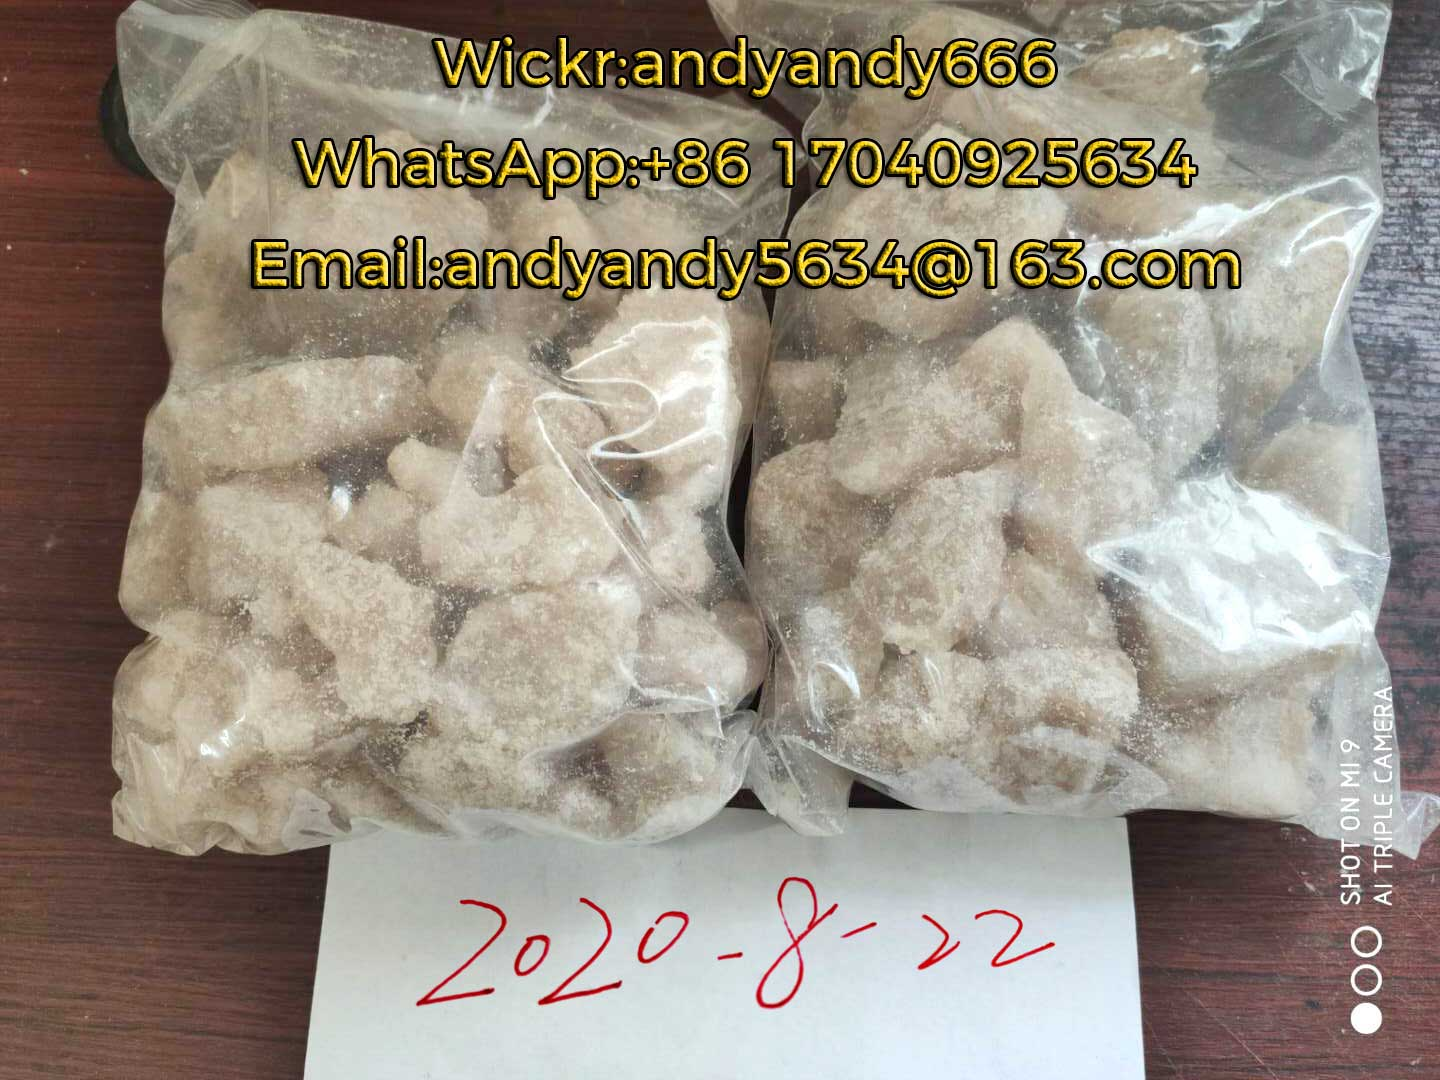 MFPEP MDPEP powder Research Chemical strong rock crystal safe shipping WhatsApp:+86 1704092563